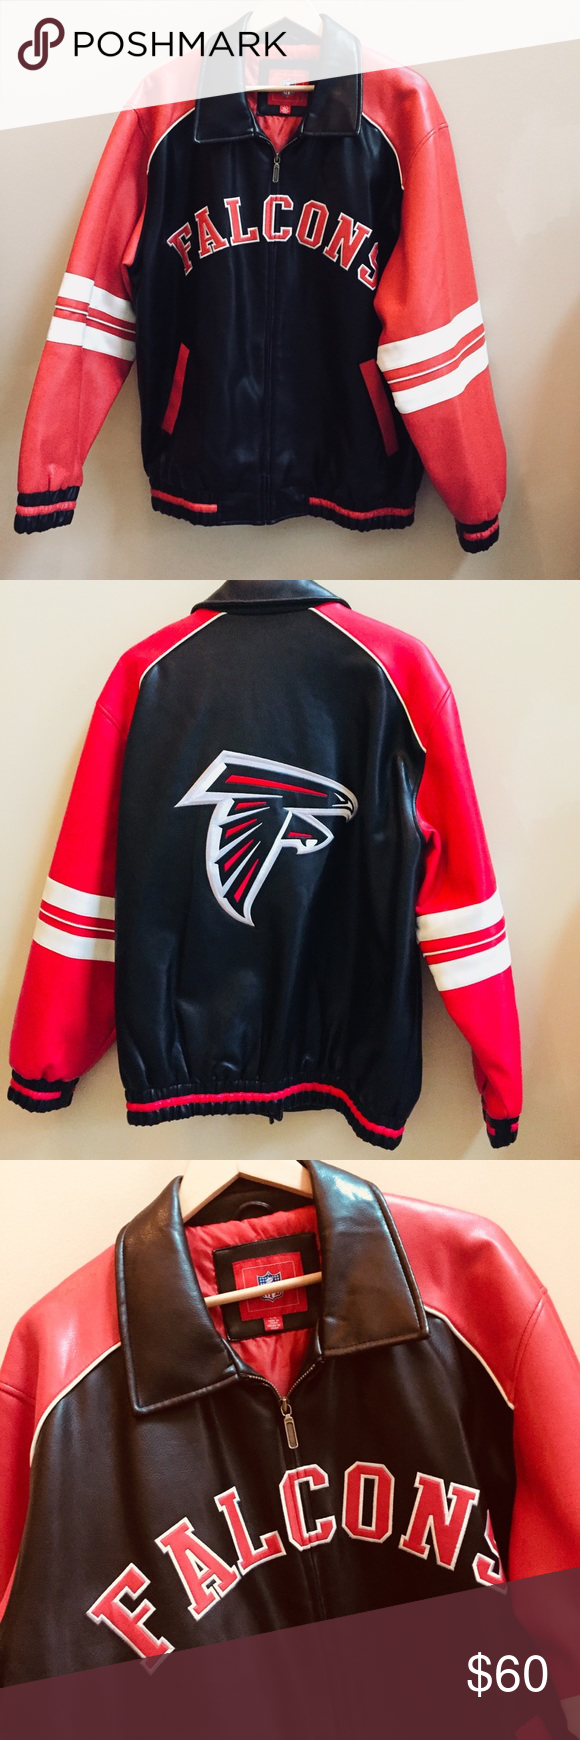 Falcons Nfl Jacket Jackets Jackets For Women Clothes Design